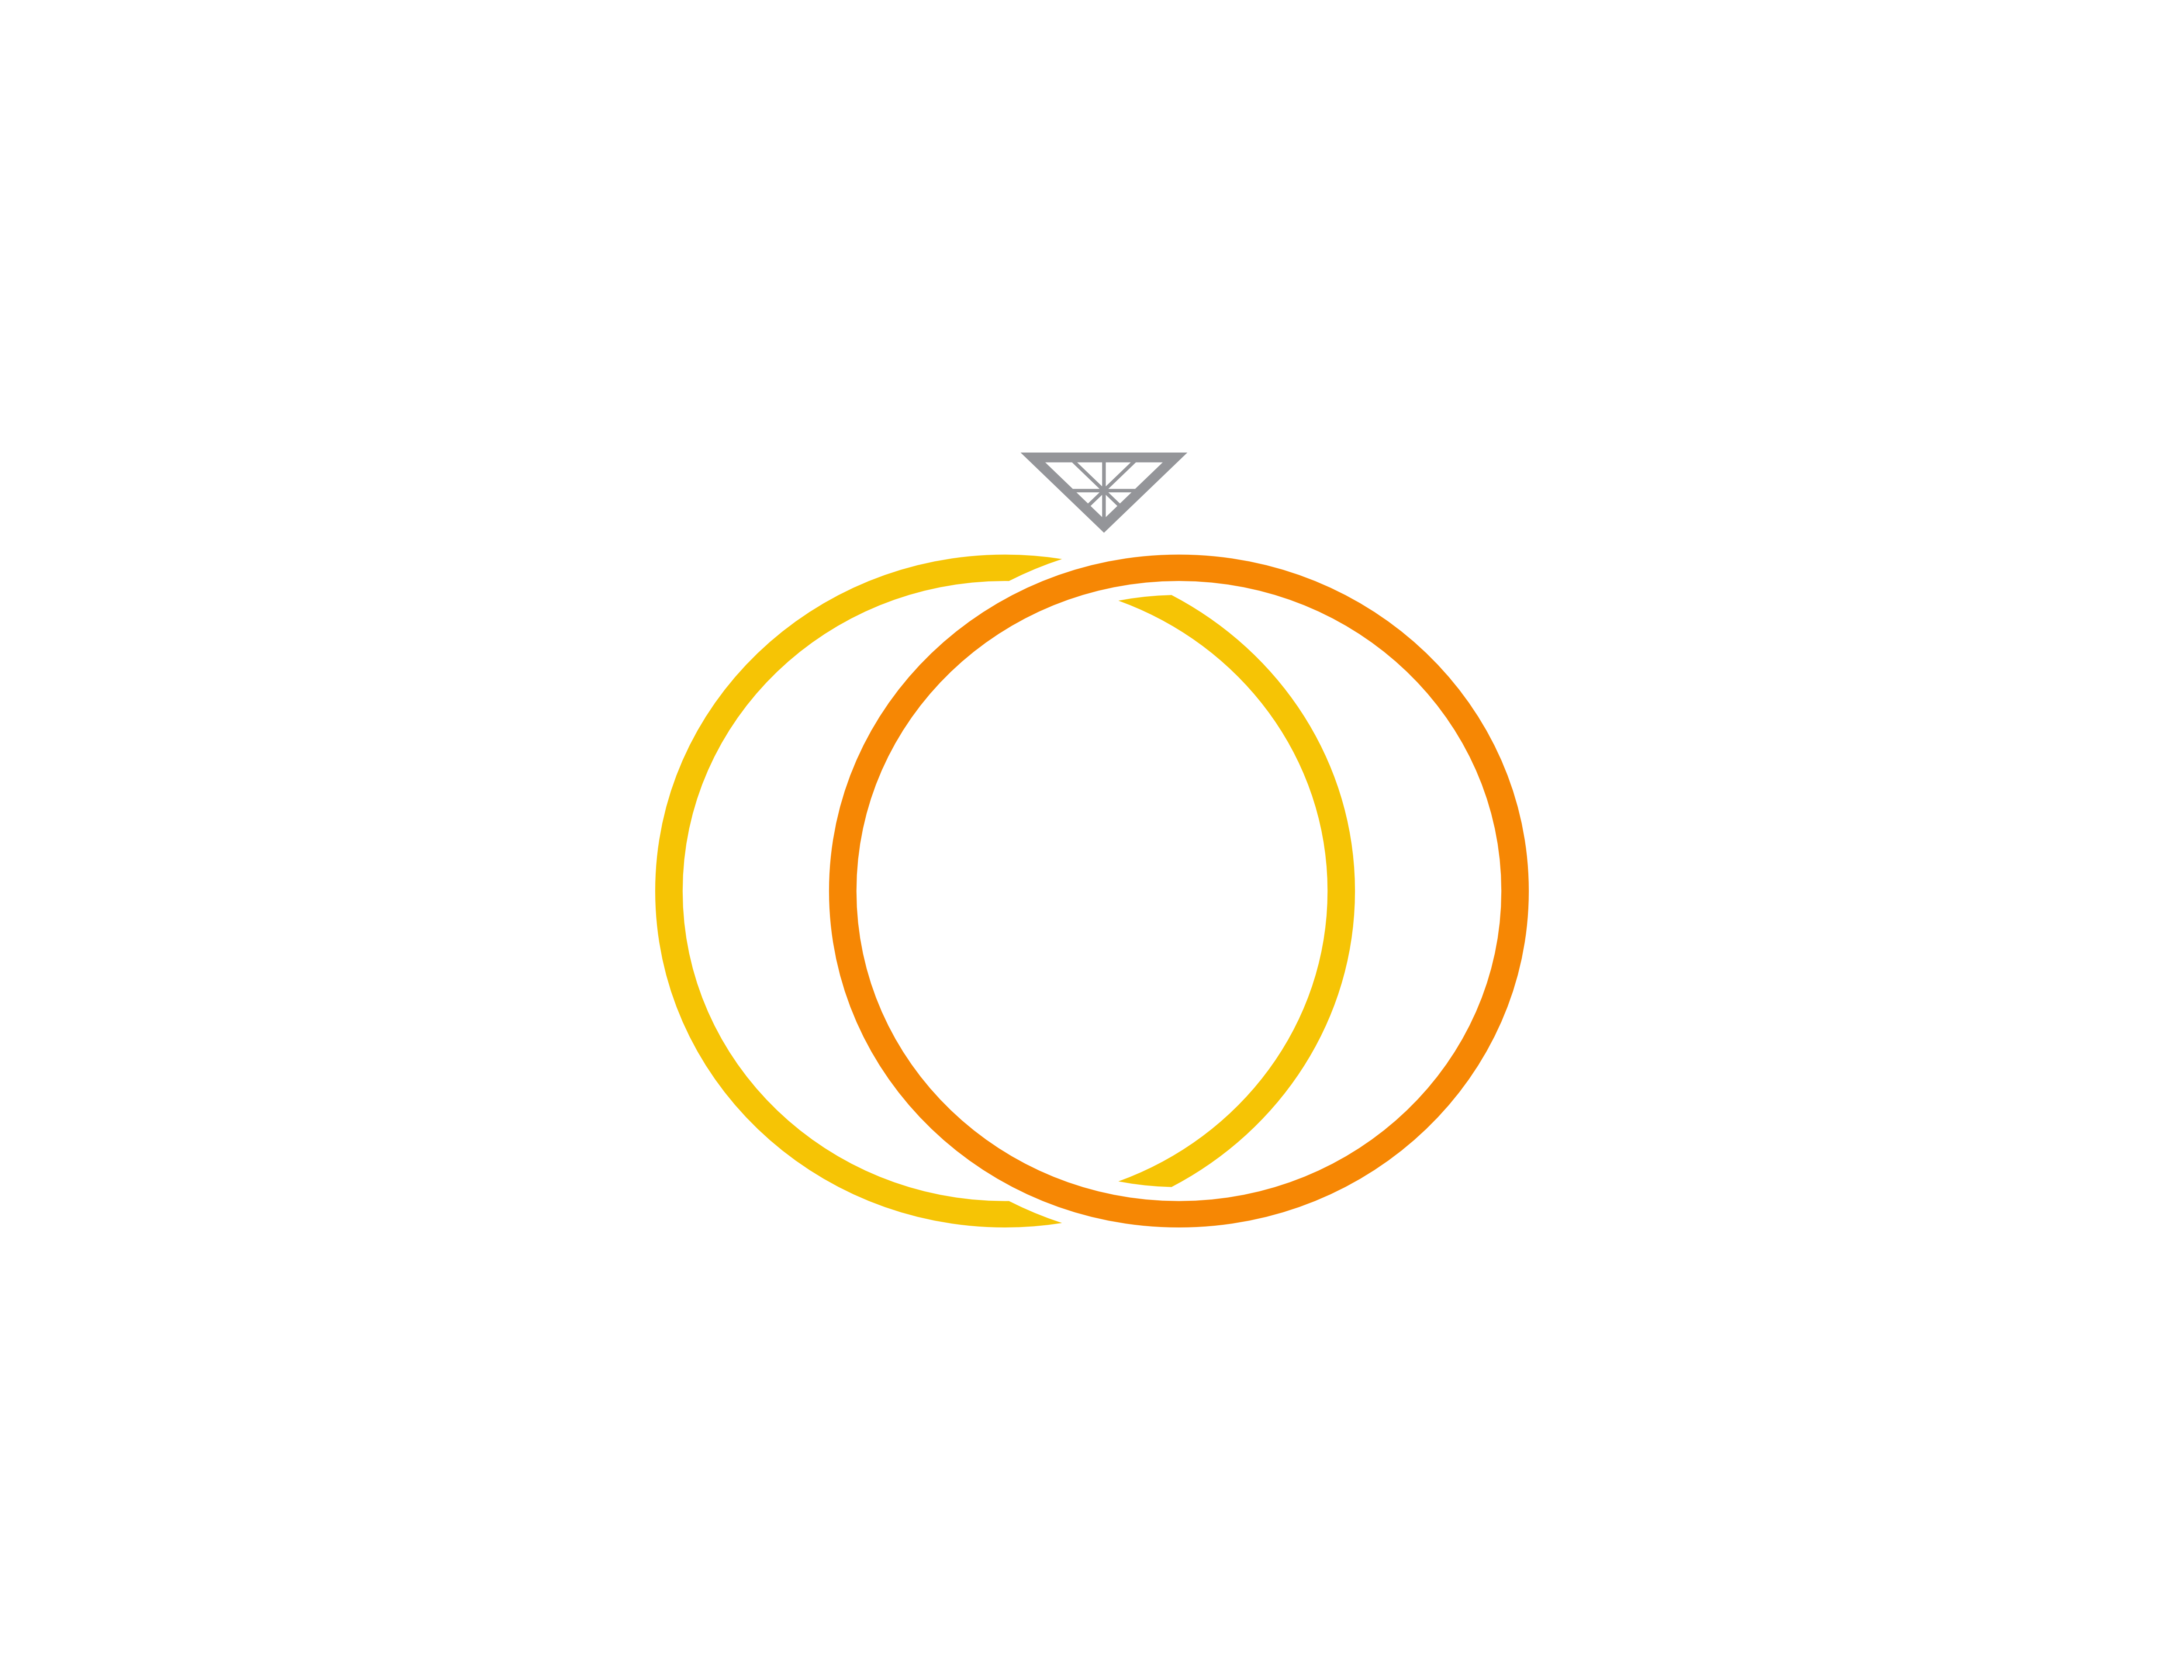 Download Free Ring With Diamond Logo Graphic By Meisuseno Creative Fabrica for Cricut Explore, Silhouette and other cutting machines.